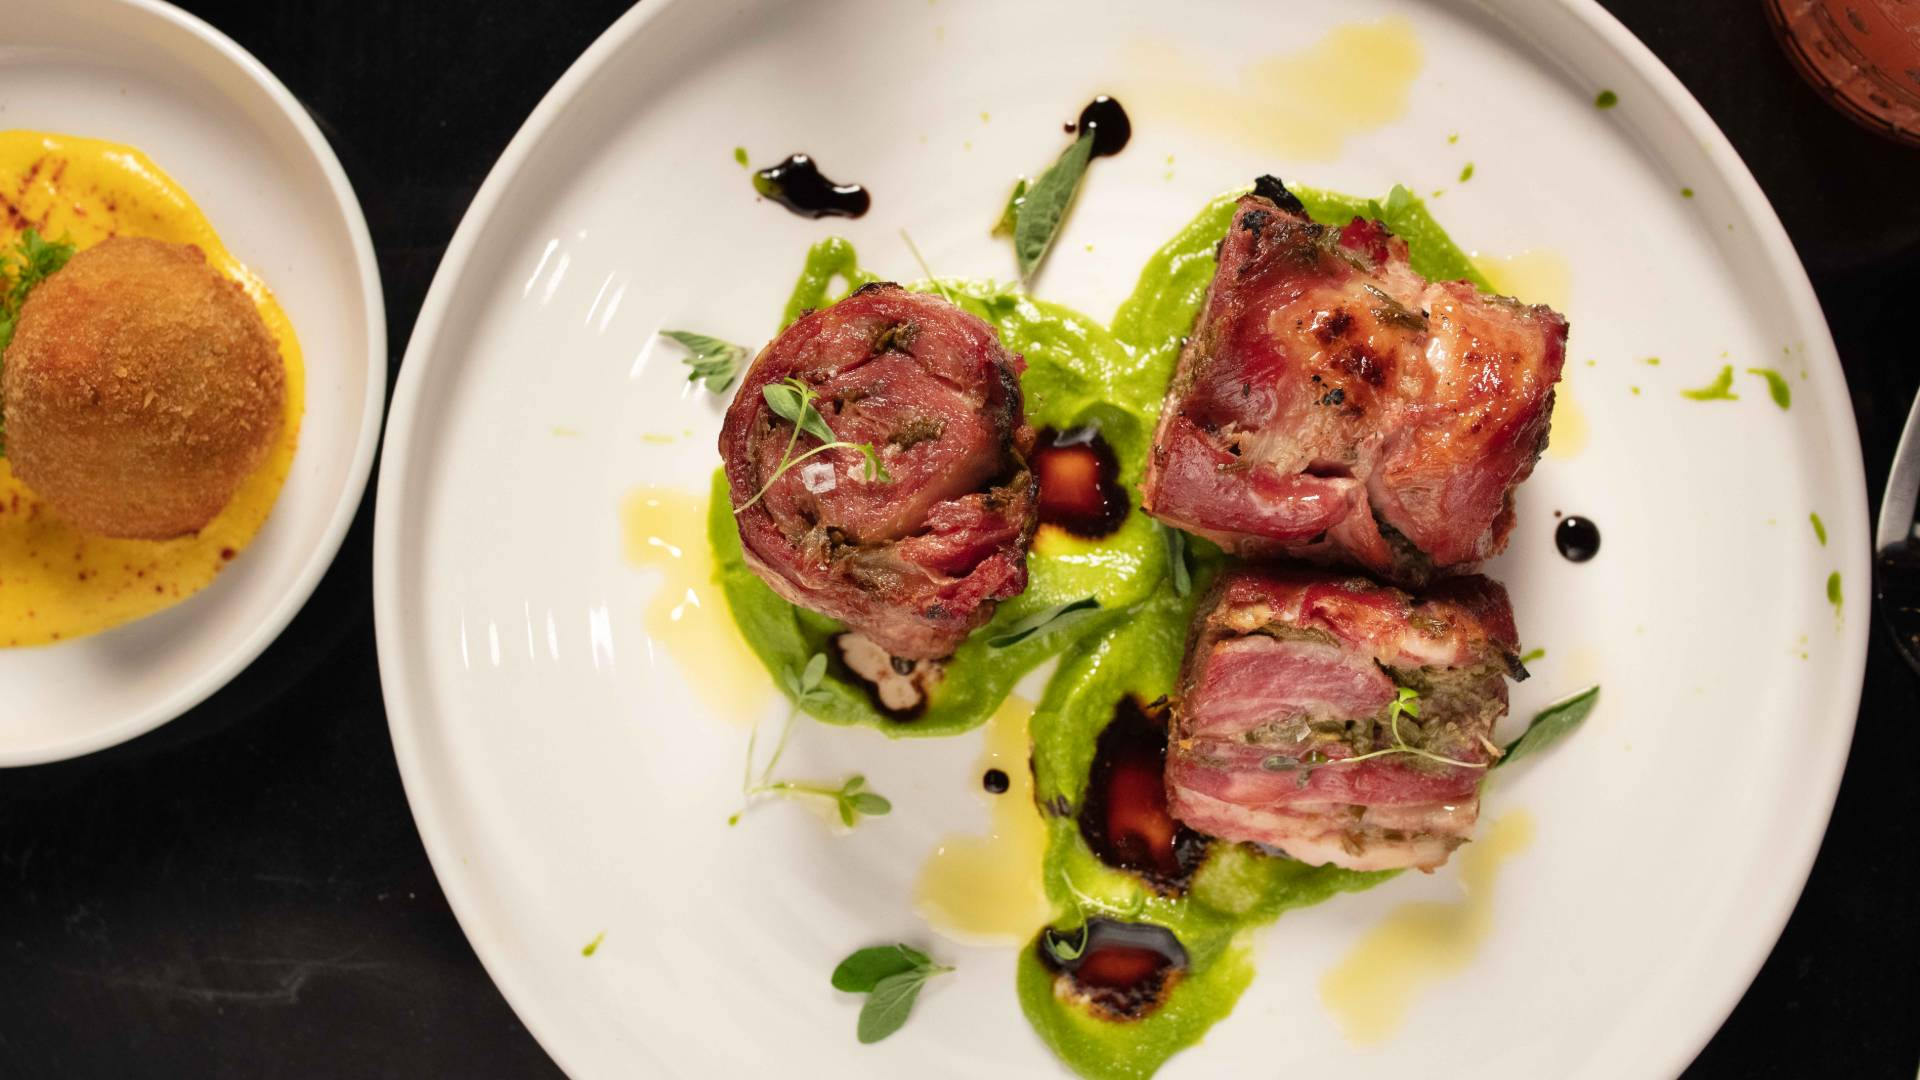 Lamchetta at Marked, a new South American restaurant in Toronto